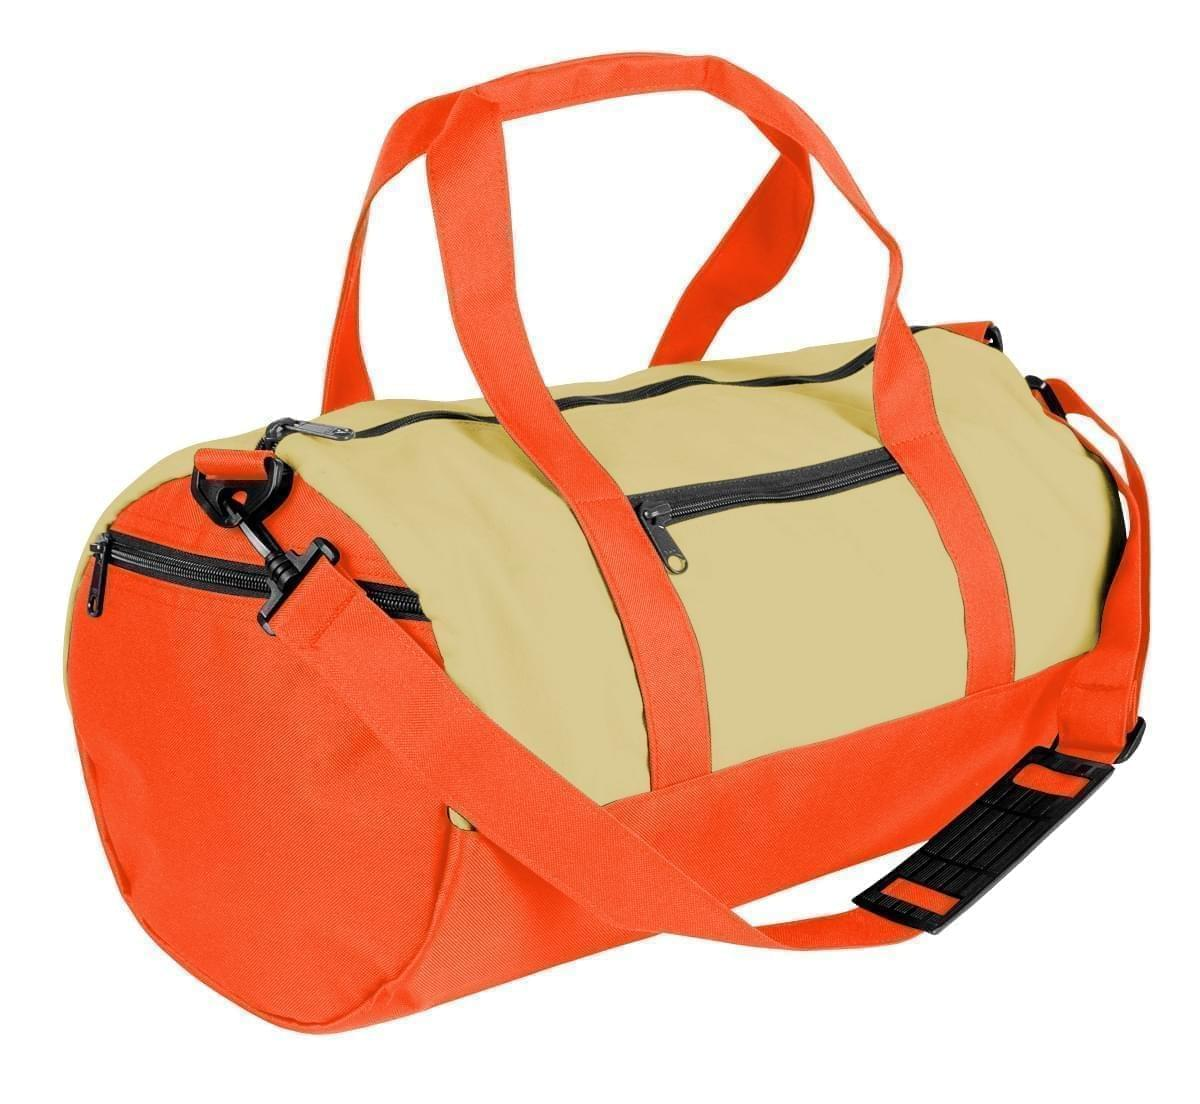 USA Made Canvas Equipment Duffle Bags, Natural-Orange, PMLXZ2AAKJ